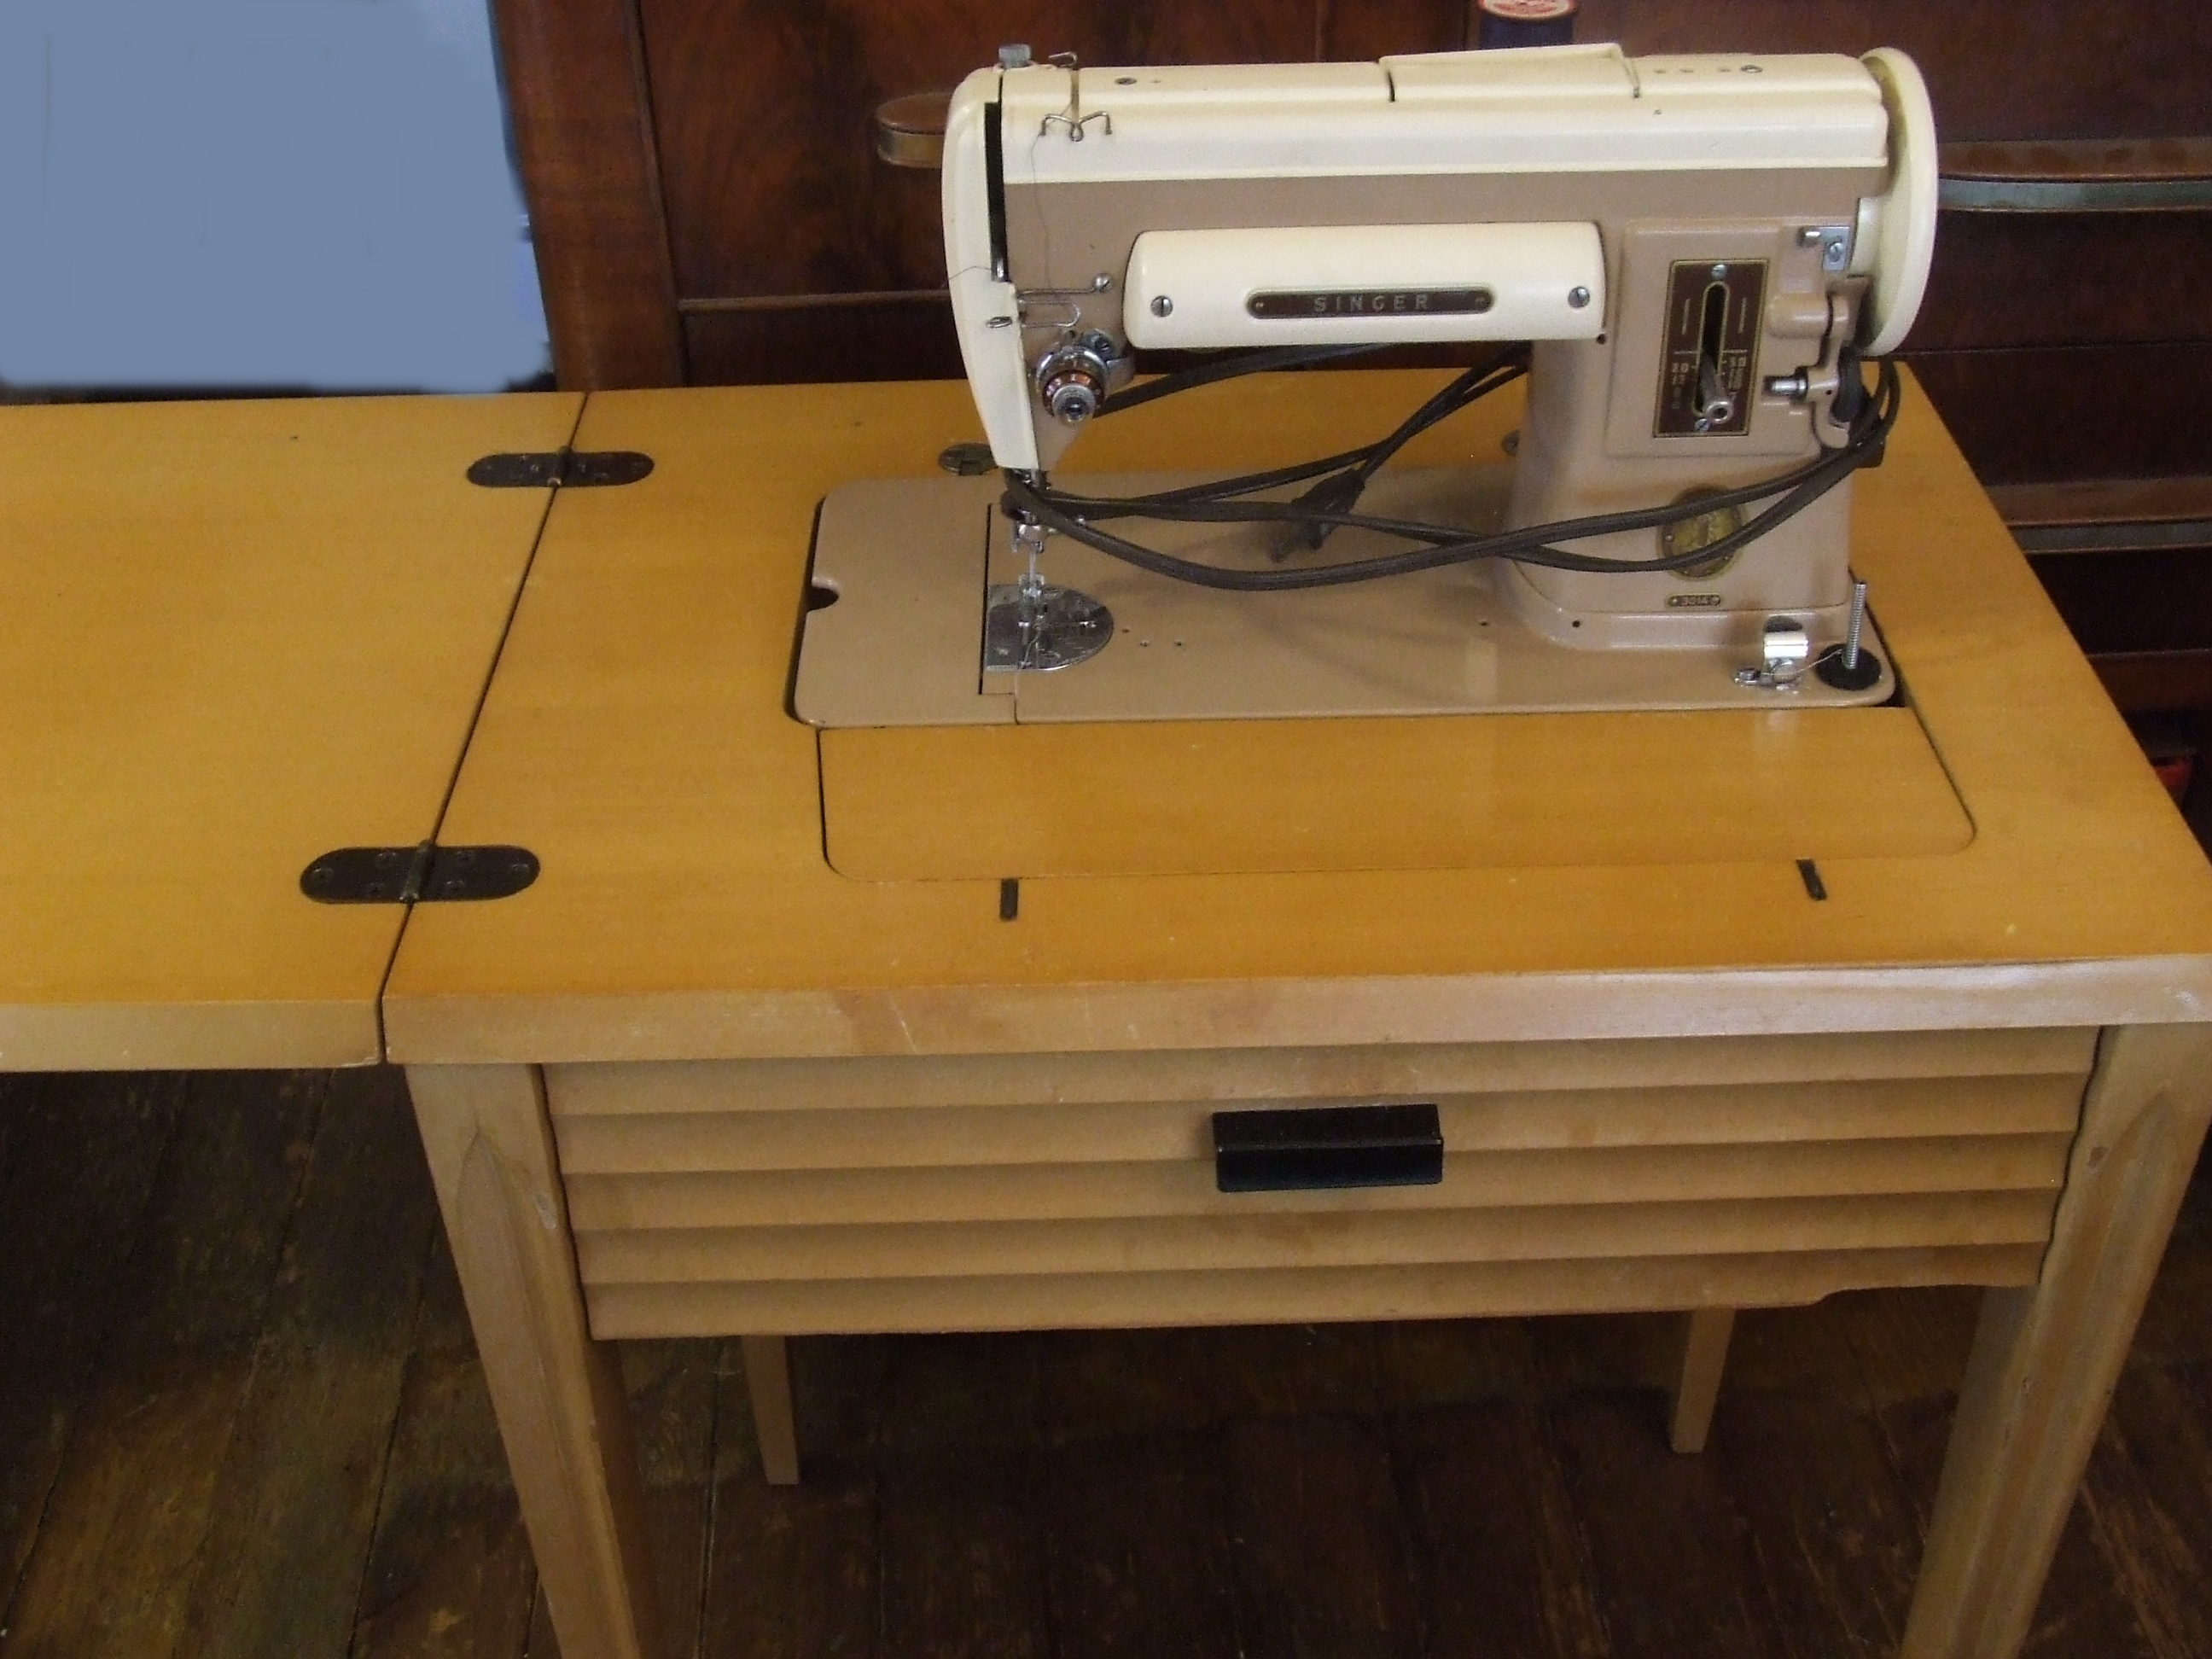 DIY Sewing Machine Cabinets Tables Plans PDF Download free planter box  plans pdf « royal25lxk